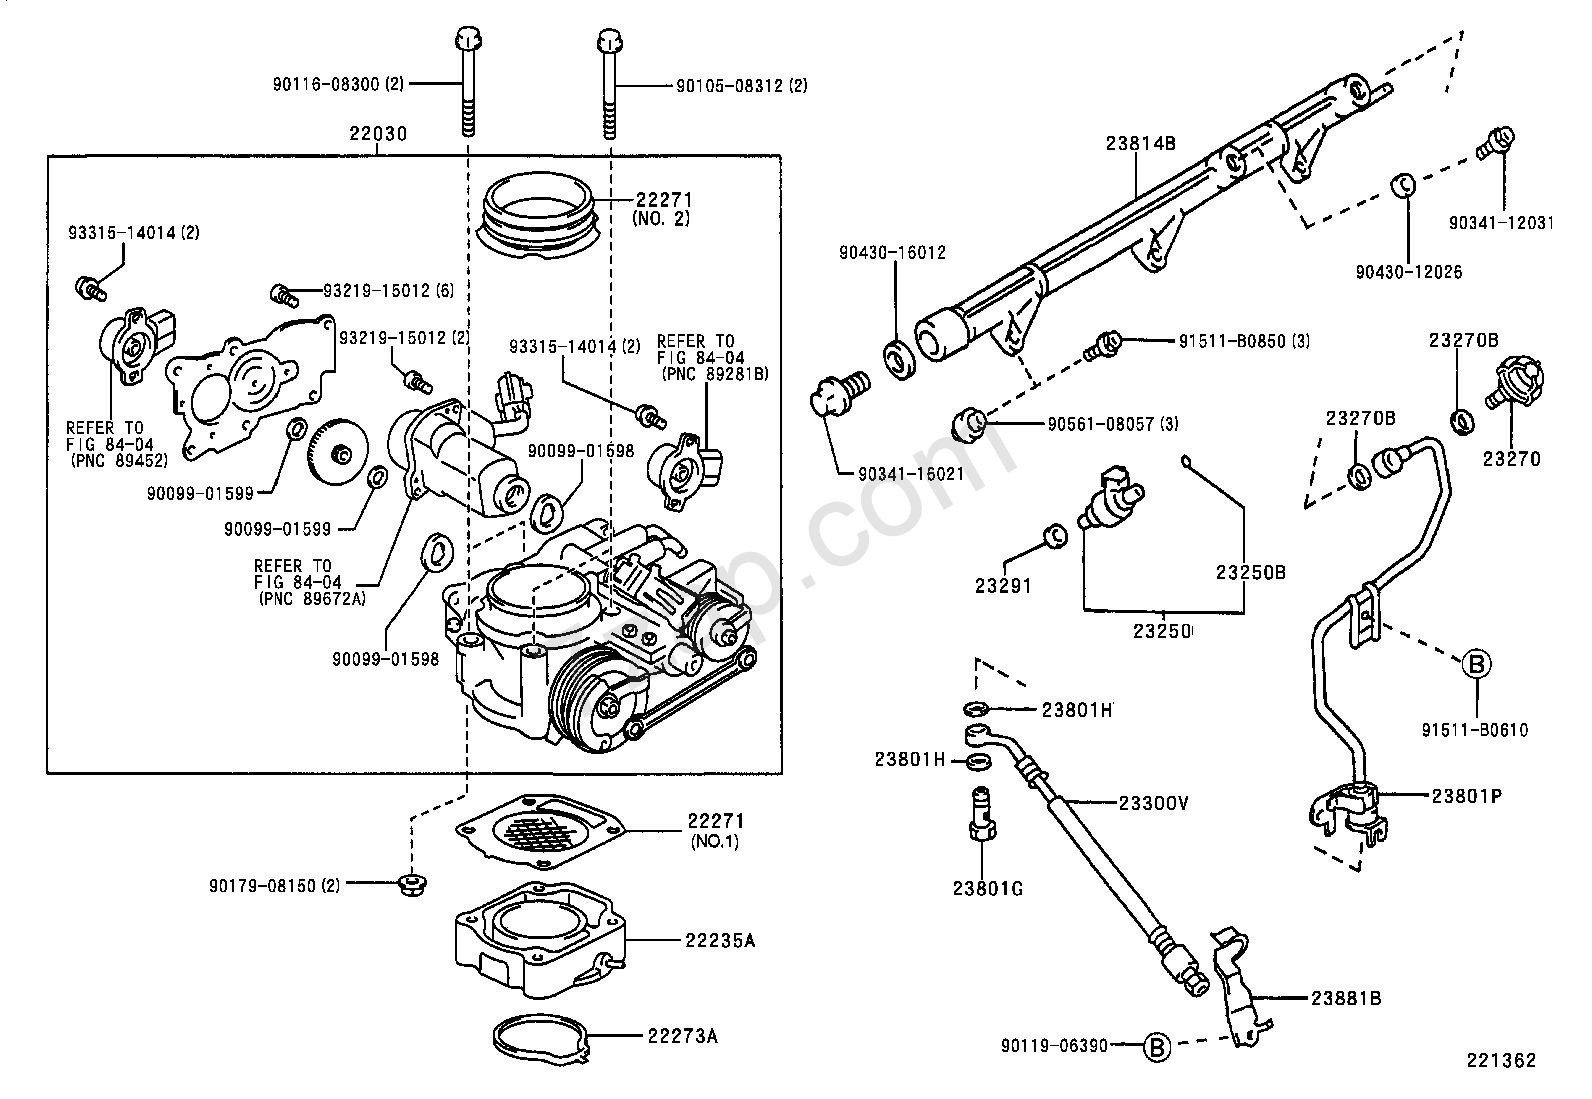 Fuel Injection System Illust No 1 Of 2 1gfe